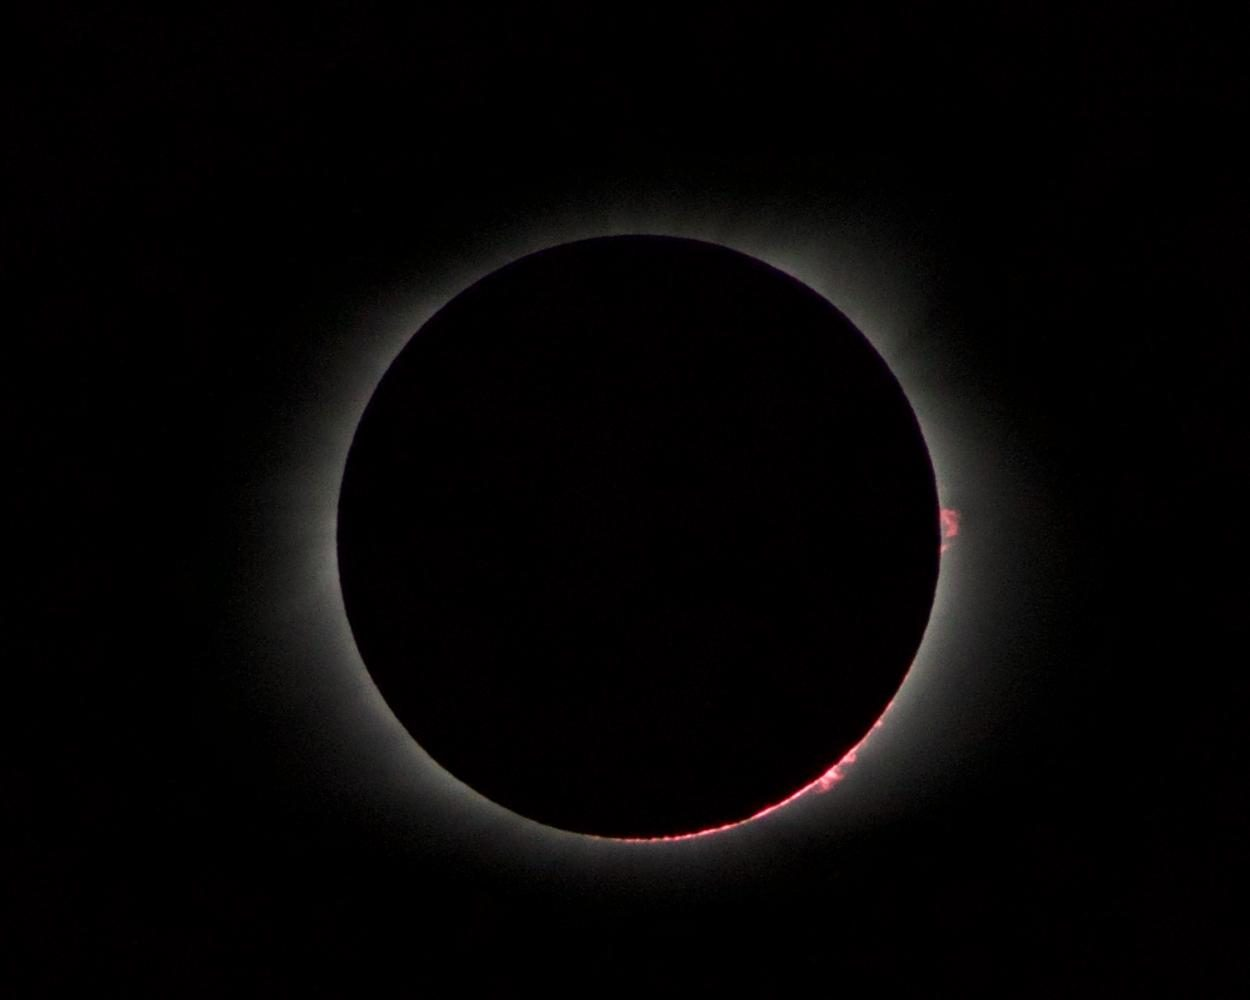 The moon blocks out the sun during a total solar eclipse.